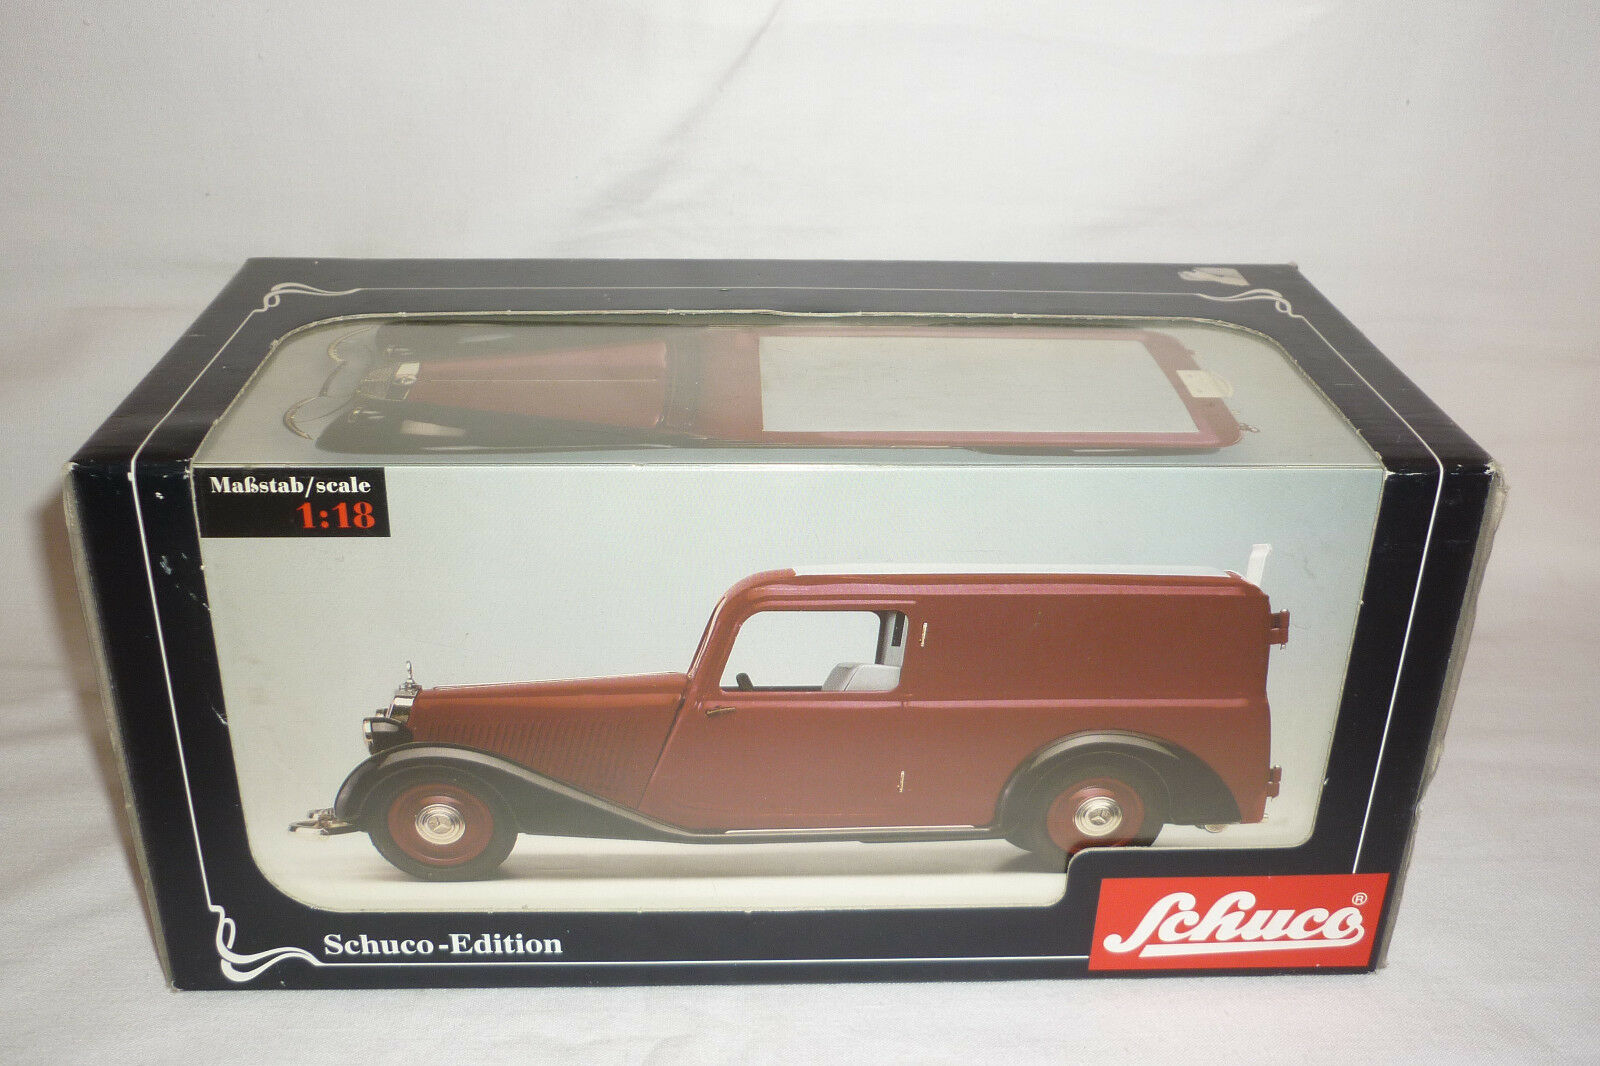 Schuco - Tin-Toy Classic Car - Mercedes Benz 170 V - Ovp - (2.schuco-12)